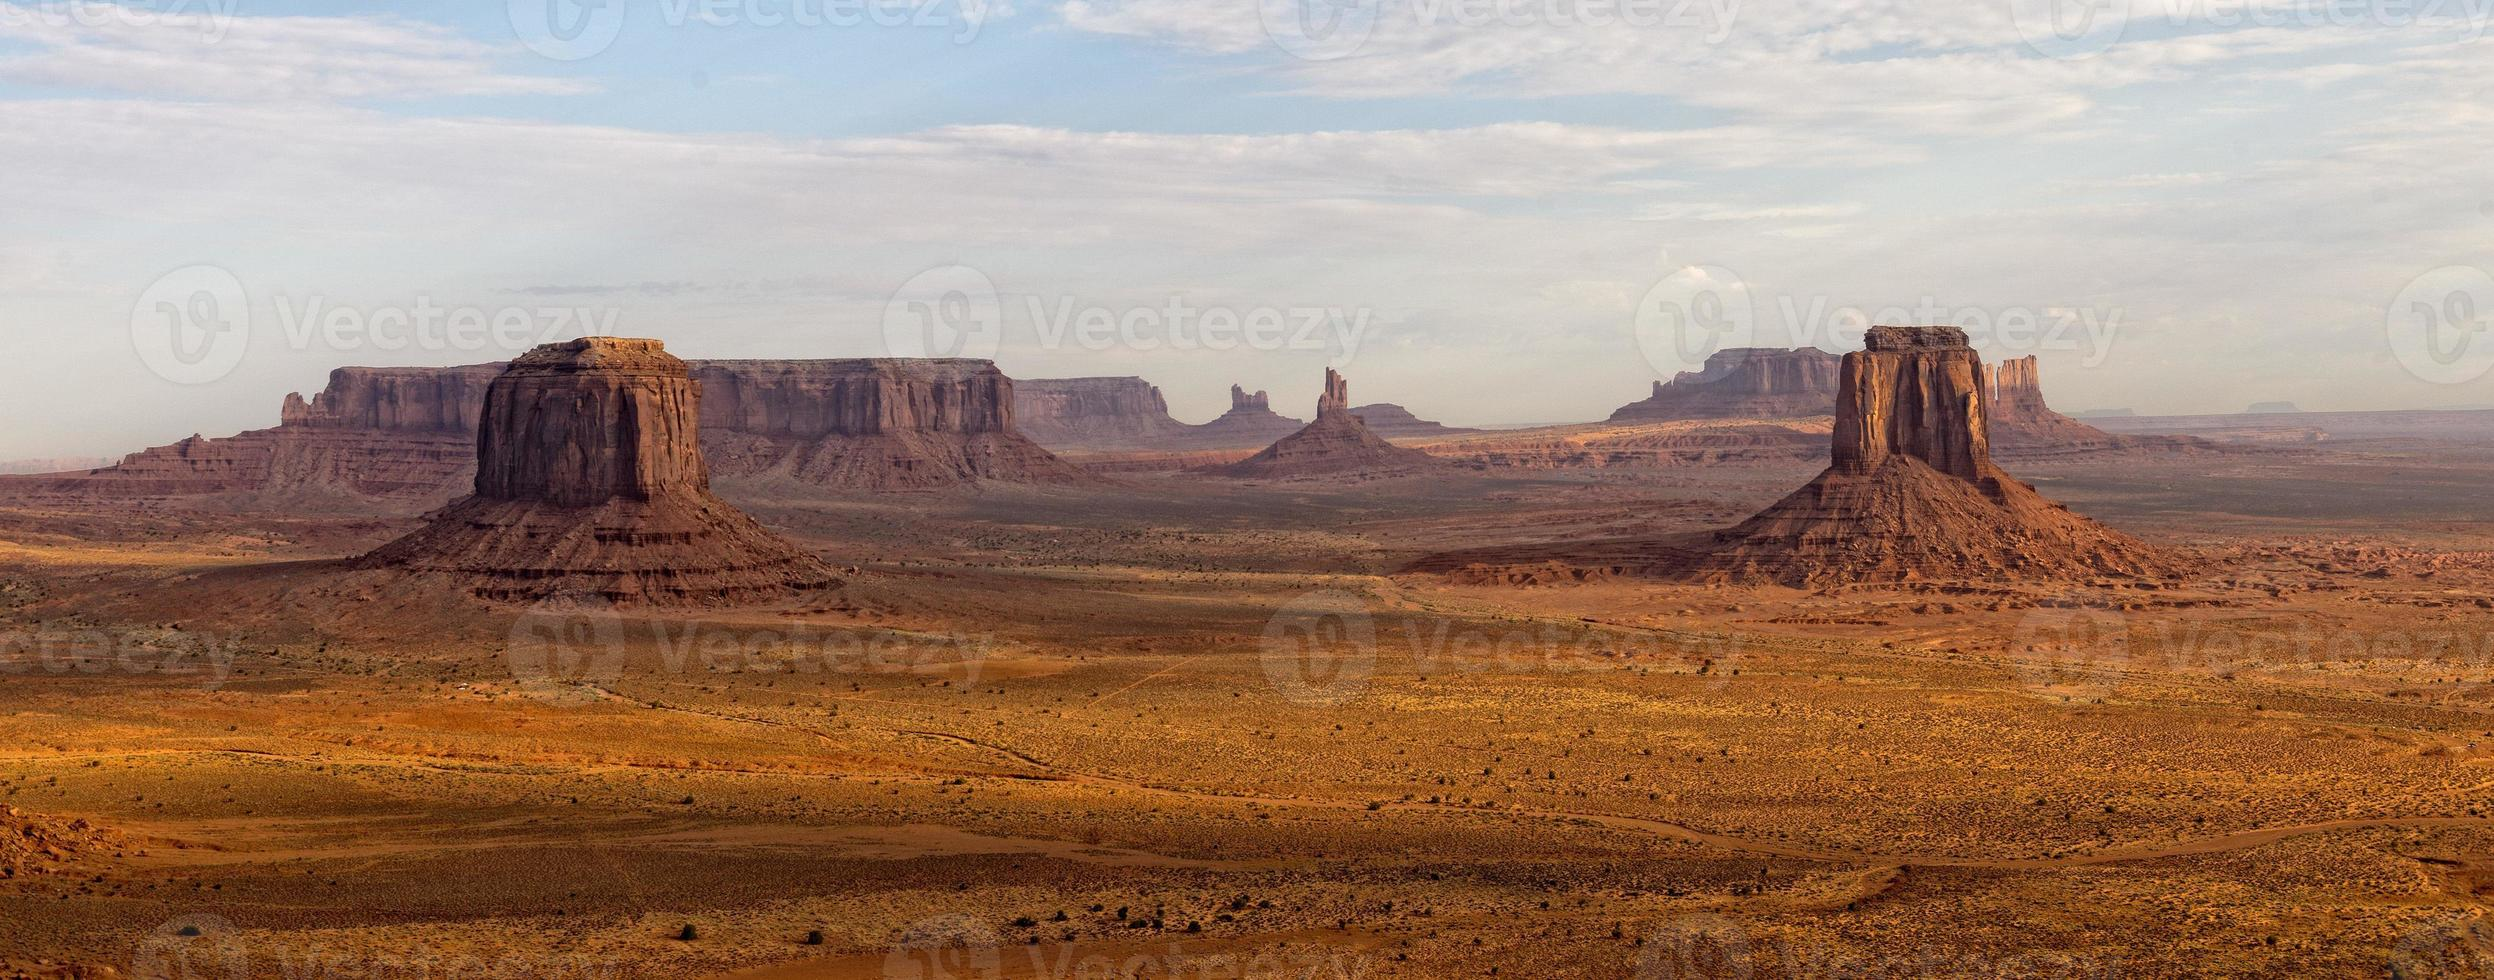 Monument Valley Aerial Sky View vom Ballon foto